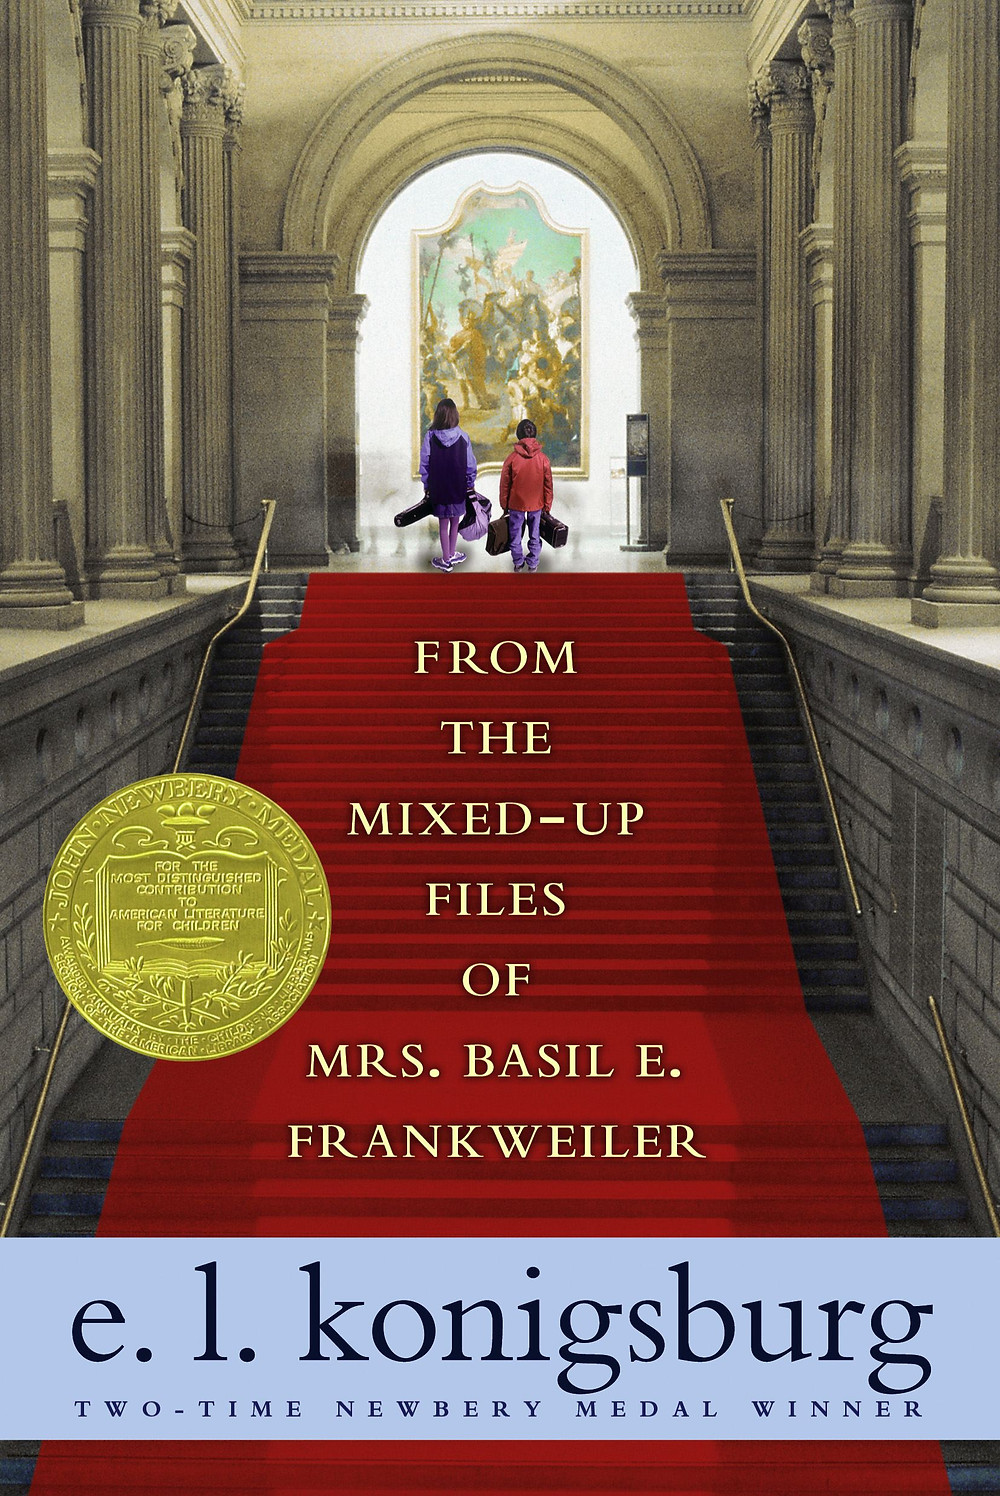 Mixed-Up Files cover konigsburg